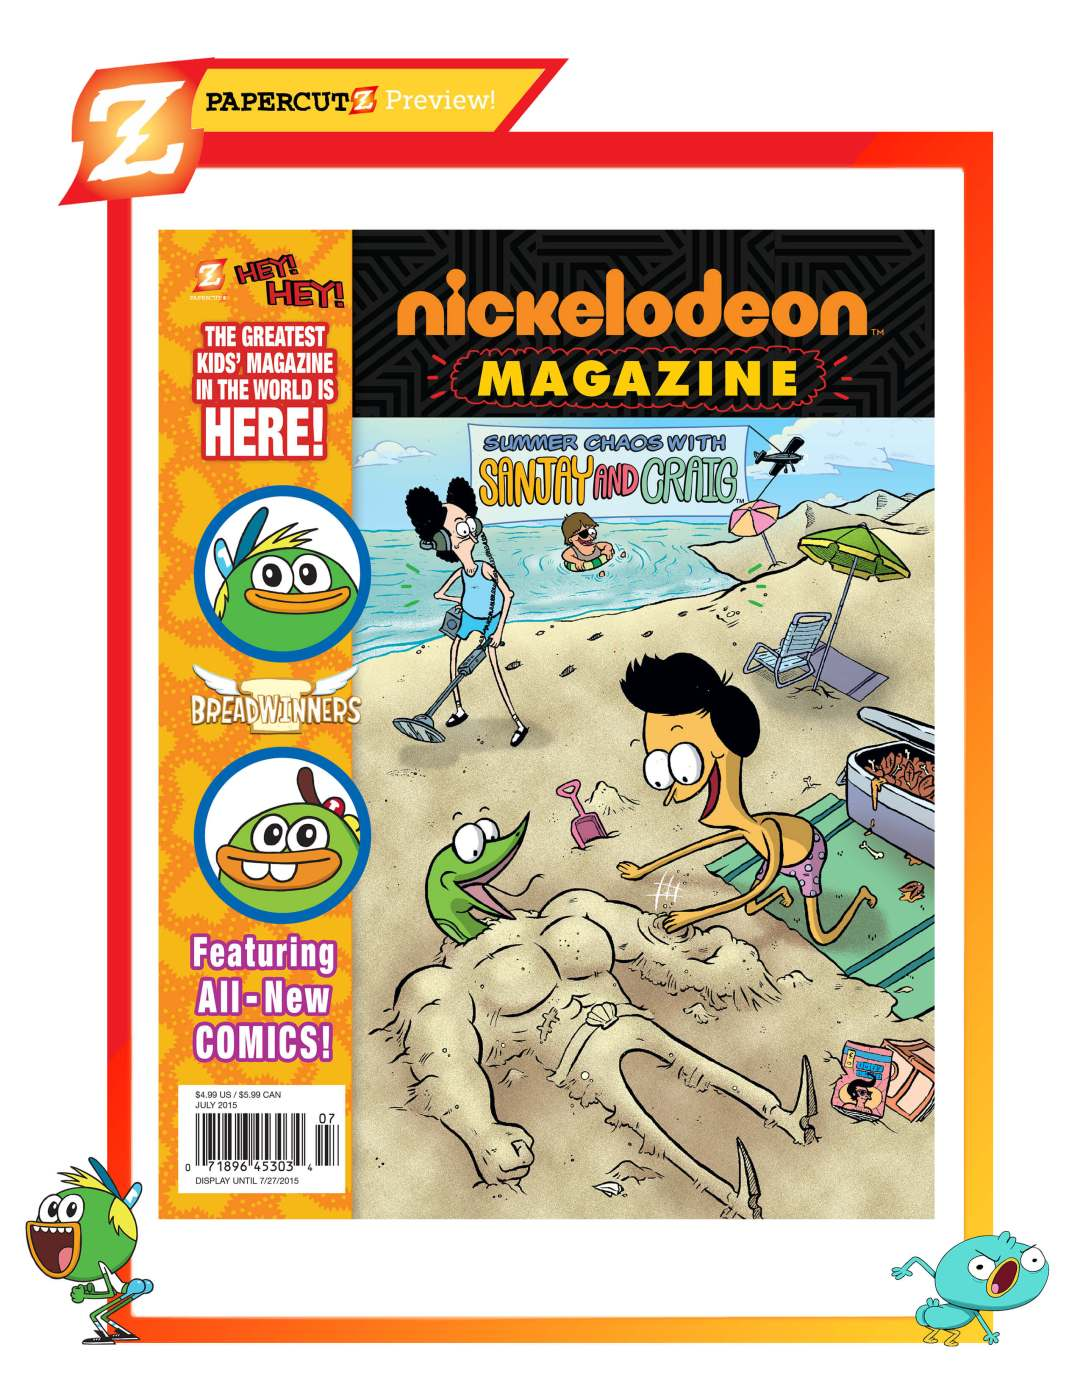 Nickelodeon_Magazine_PREVIEW_cover